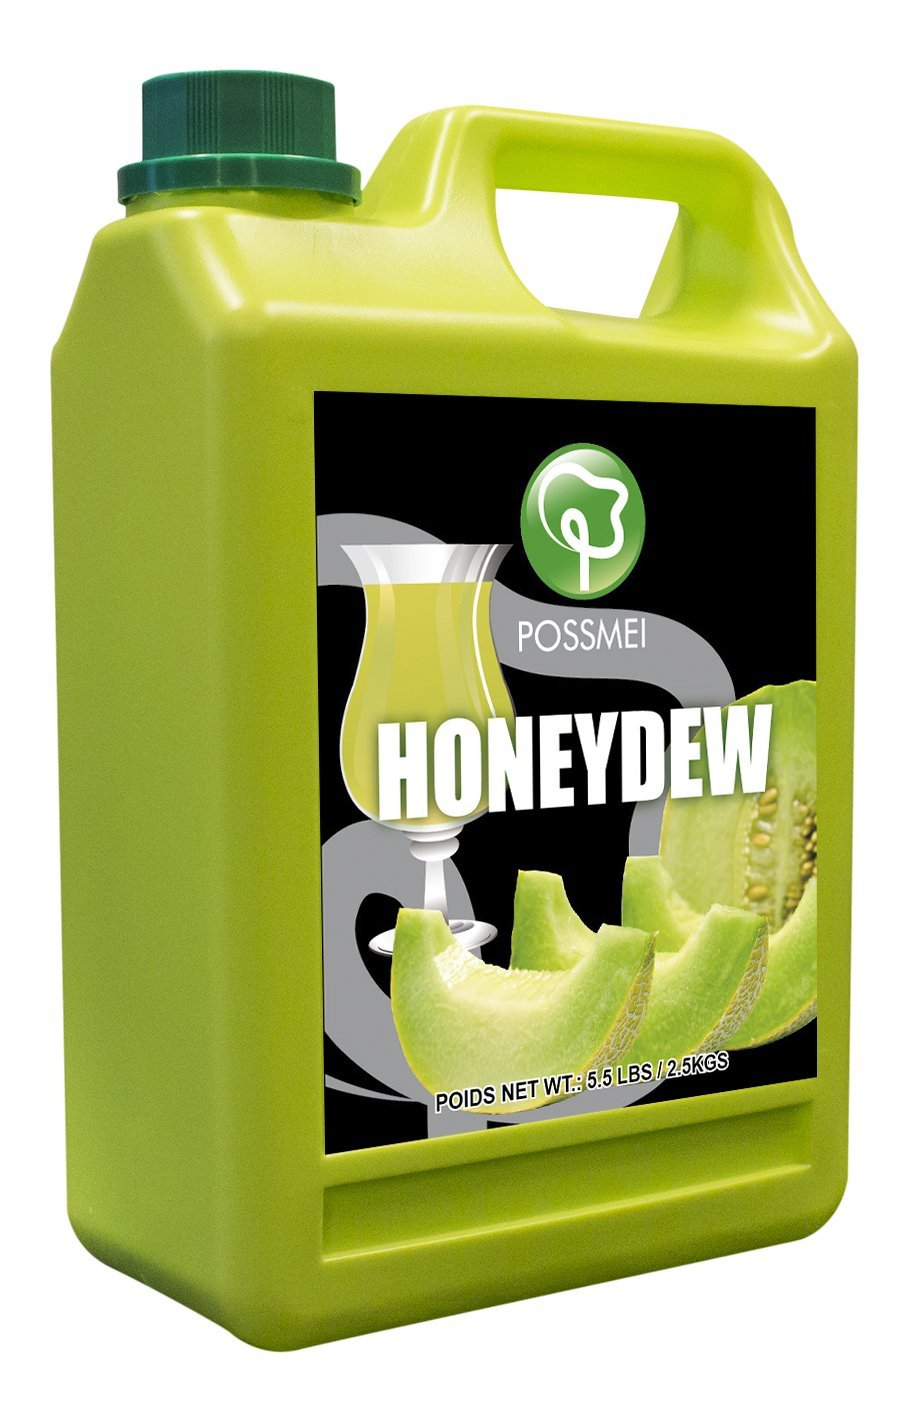 Possmei Flavored Syrup, Honeydew, 5.5 Pound